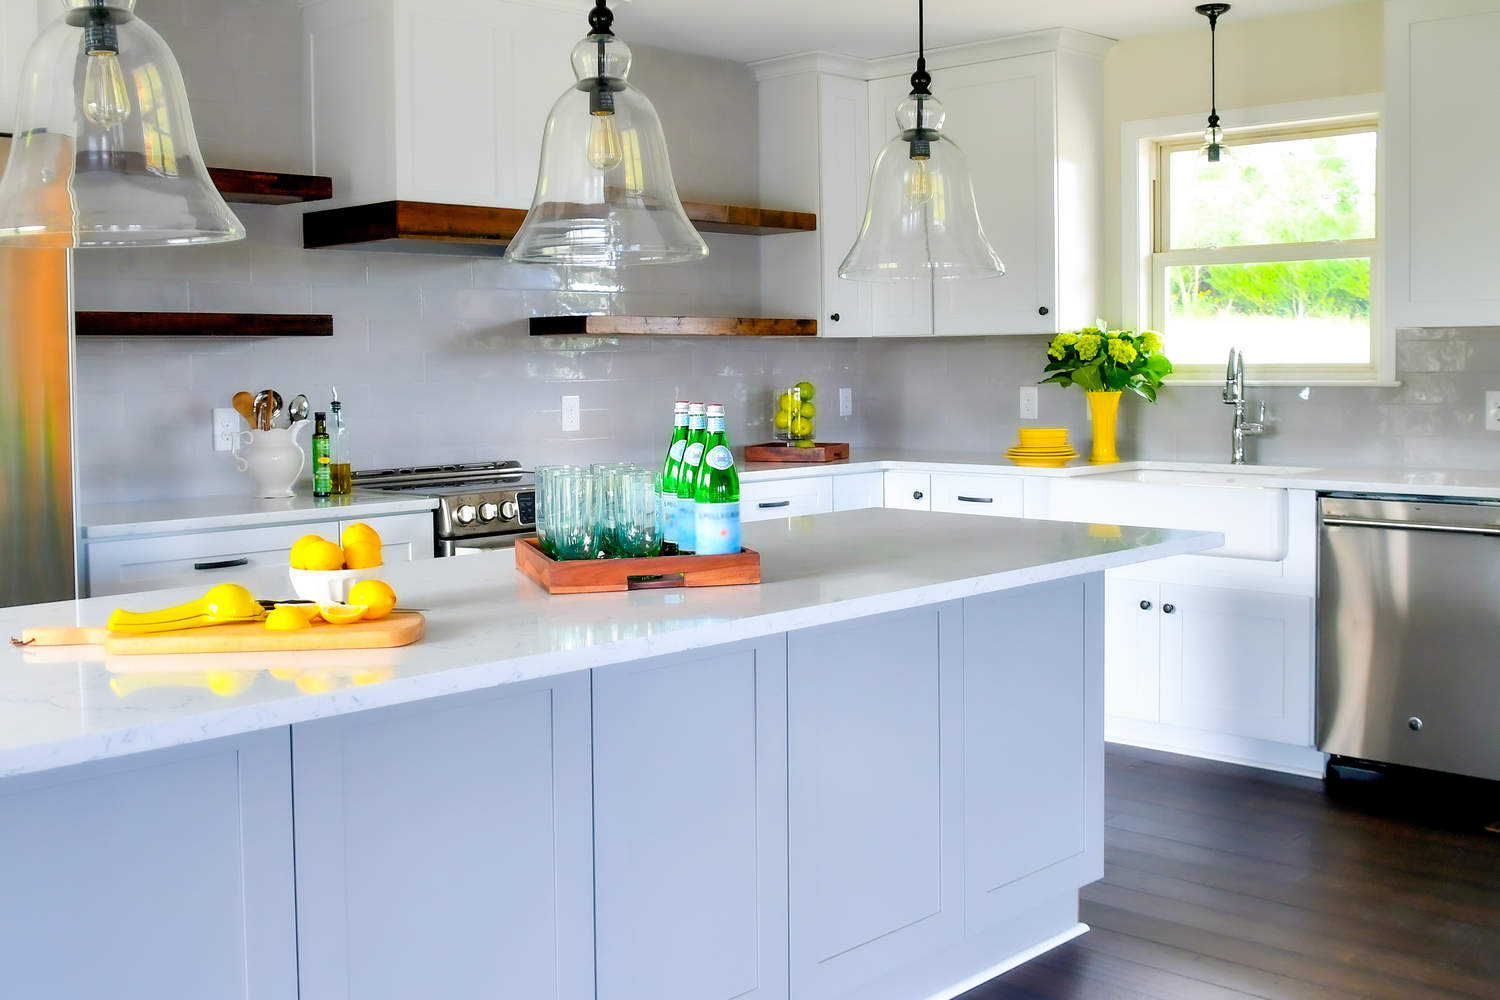 bright-cheery-kitchen-in-a-new-home-with-open-conc-T7SUDLD